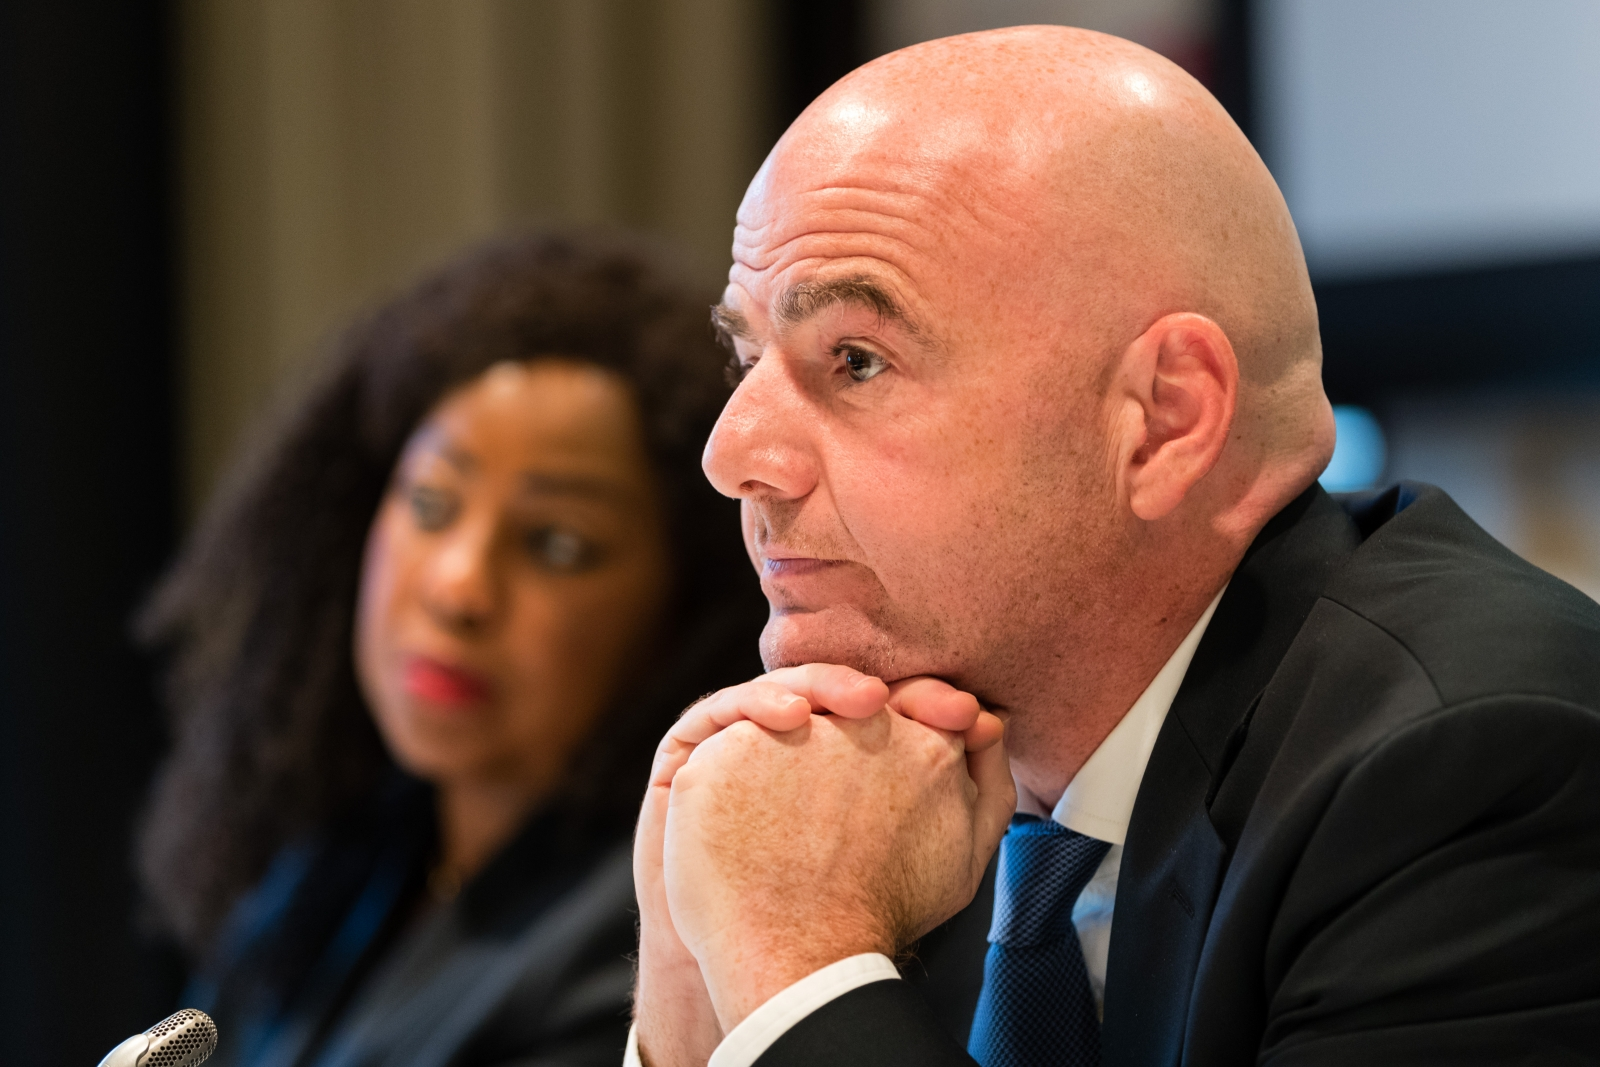 Fatma Samoura (left) and Gianni Infantino